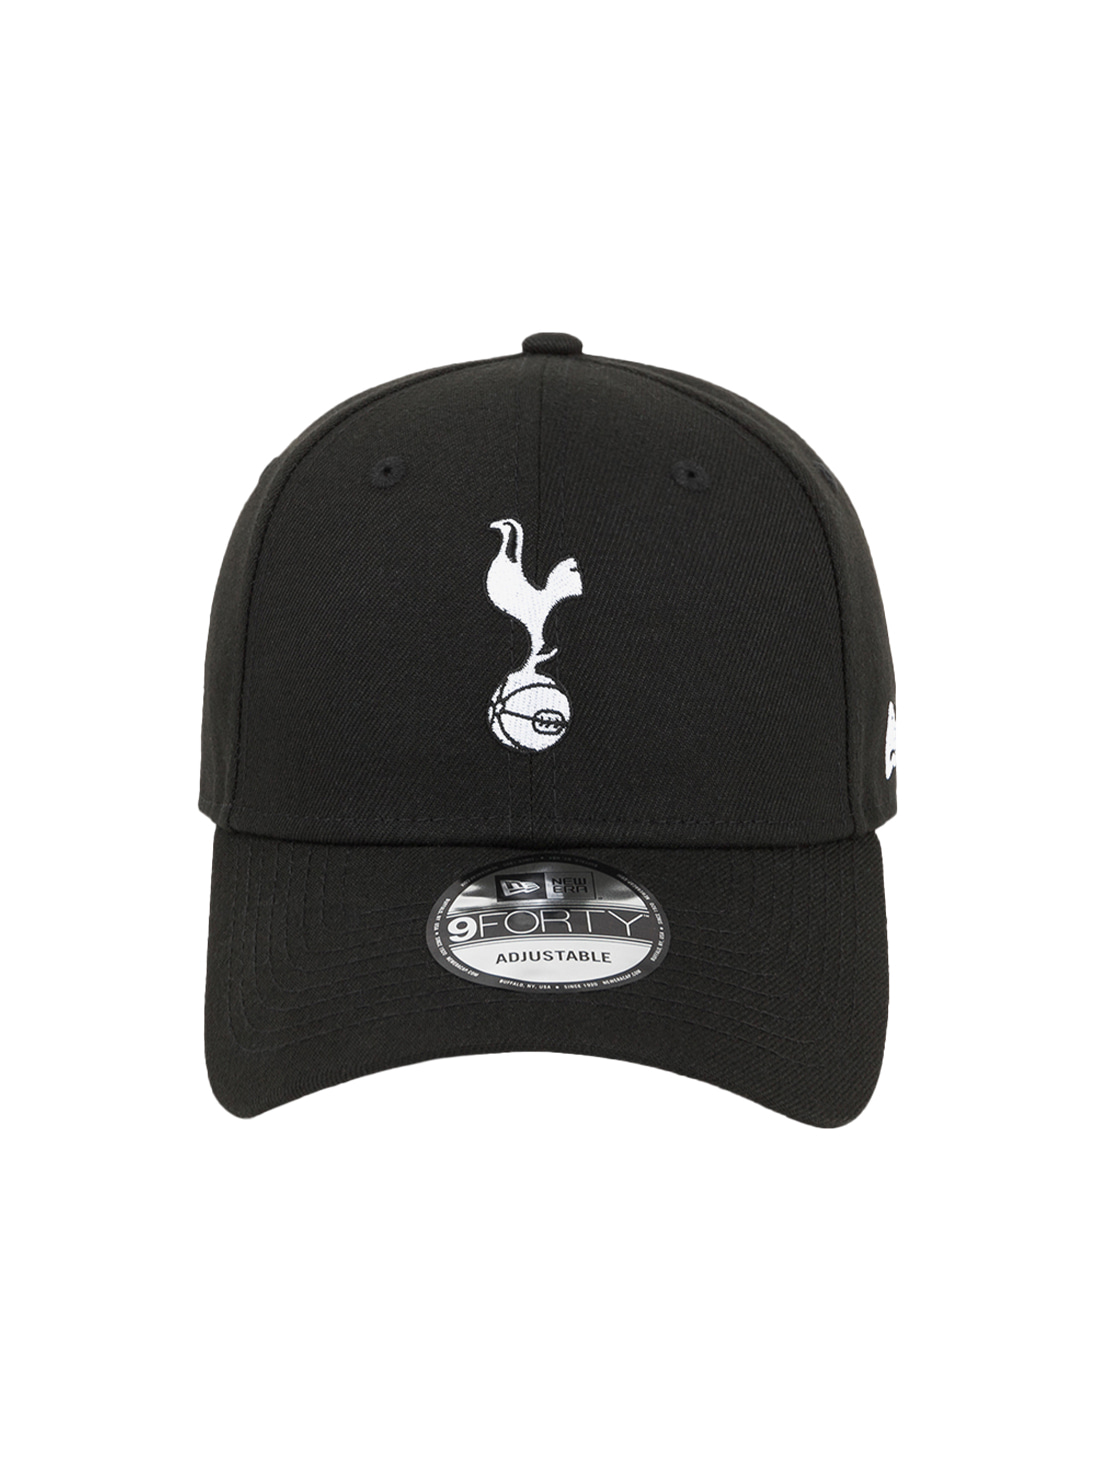 GOALSTUDIO TOTTENHAM 940 BALL CAP - BLACK